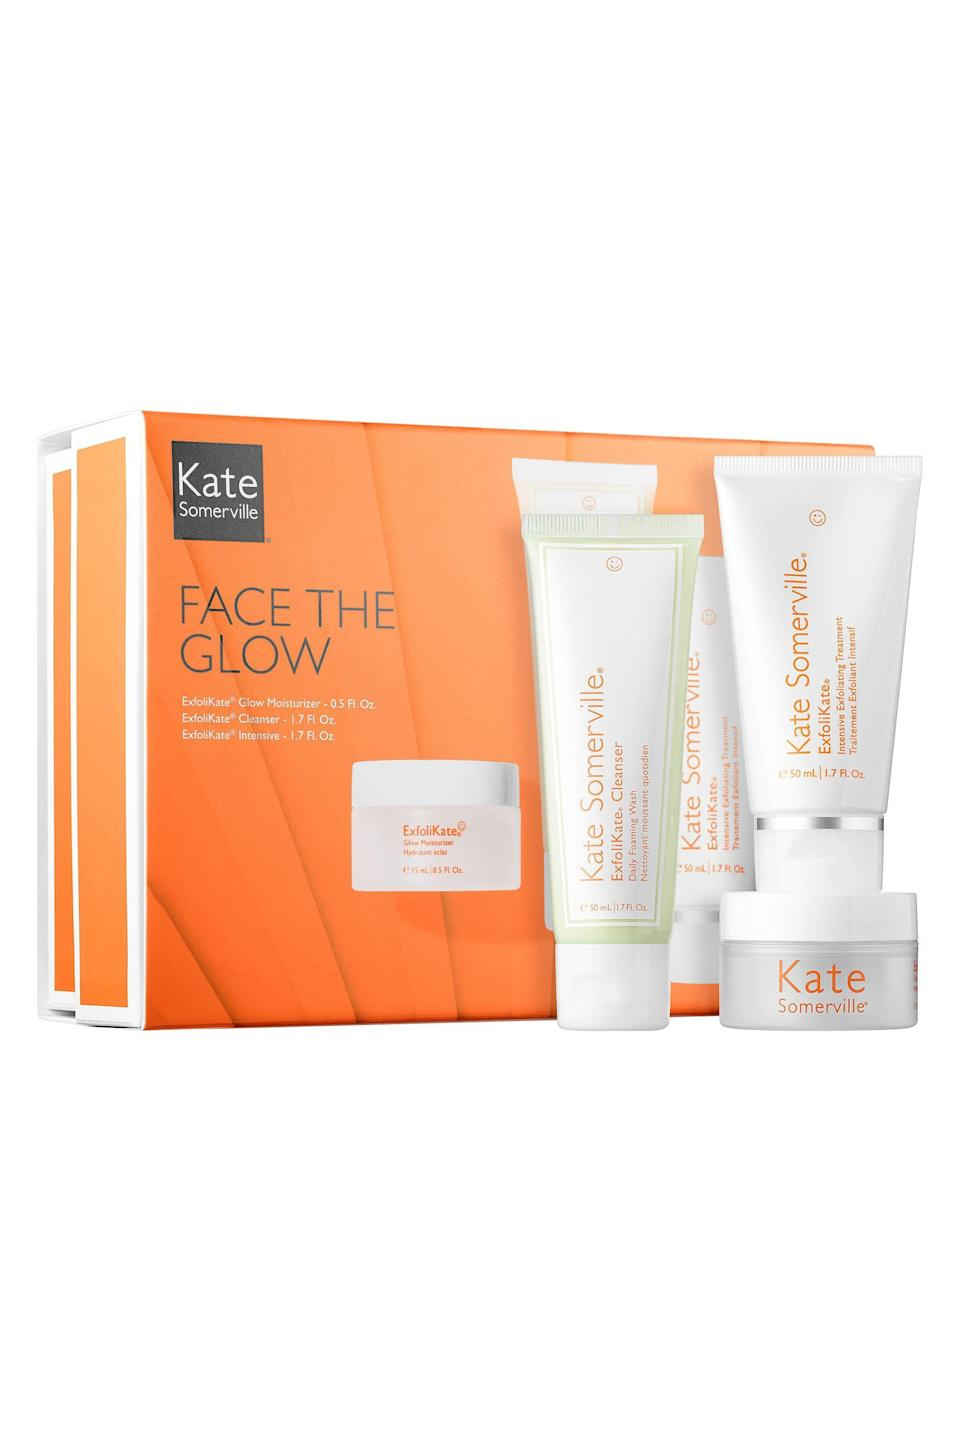 """<p><strong>Kate Somerville </strong></p><p>nordstrom.com</p><p><strong>$65.00</strong></p><p><a href=""""https://go.redirectingat.com?id=74968X1596630&url=https%3A%2F%2Fwww.nordstrom.com%2Fs%2Fkate-somerville-face-the-glow-kit-usd-114-value%2F5093138&sref=https%3A%2F%2Fwww.elle.com%2Fbeauty%2Fmakeup-skin-care%2Fg33433197%2Fbest-skin-care-sets%2F"""" rel=""""nofollow noopener"""" target=""""_blank"""" data-ylk=""""slk:Shop Now"""" class=""""link rapid-noclick-resp"""">Shop Now</a></p><p>Kate Somerville's kit is the best travel buddy anyone can have. Whenever your skin looks dull and dry, reach for this kit to restore your glow.</p>"""